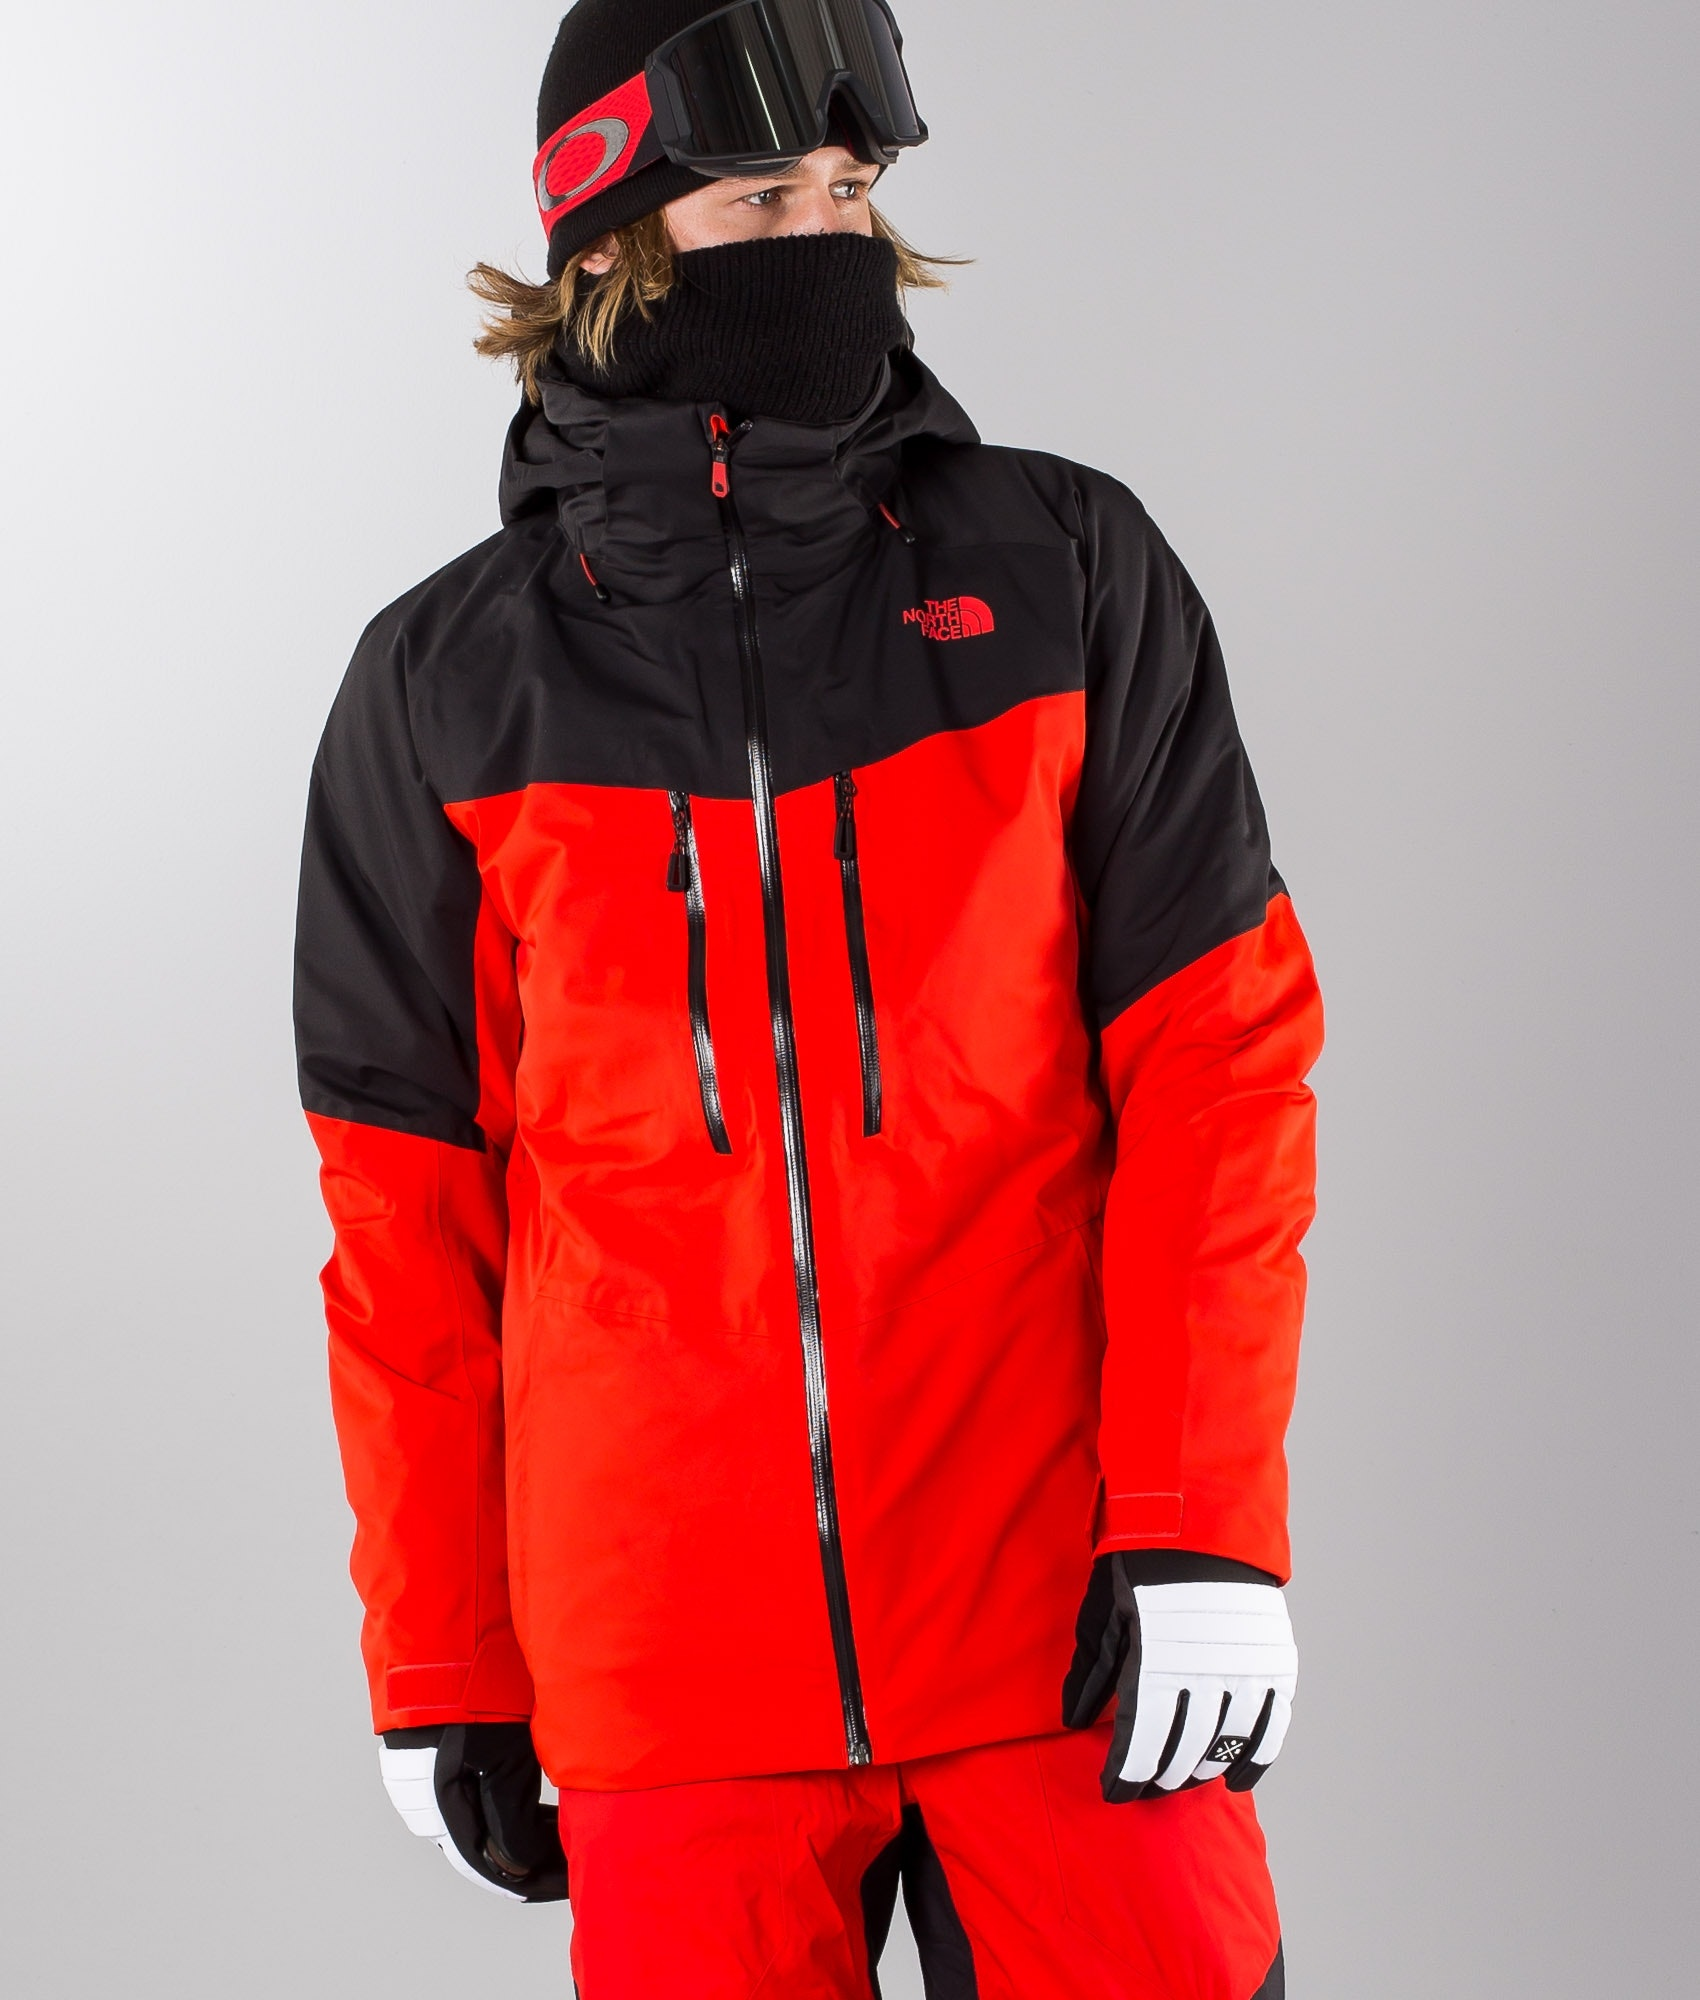 The North Face Chakal Ski Jacket Red Black Ridestore Com